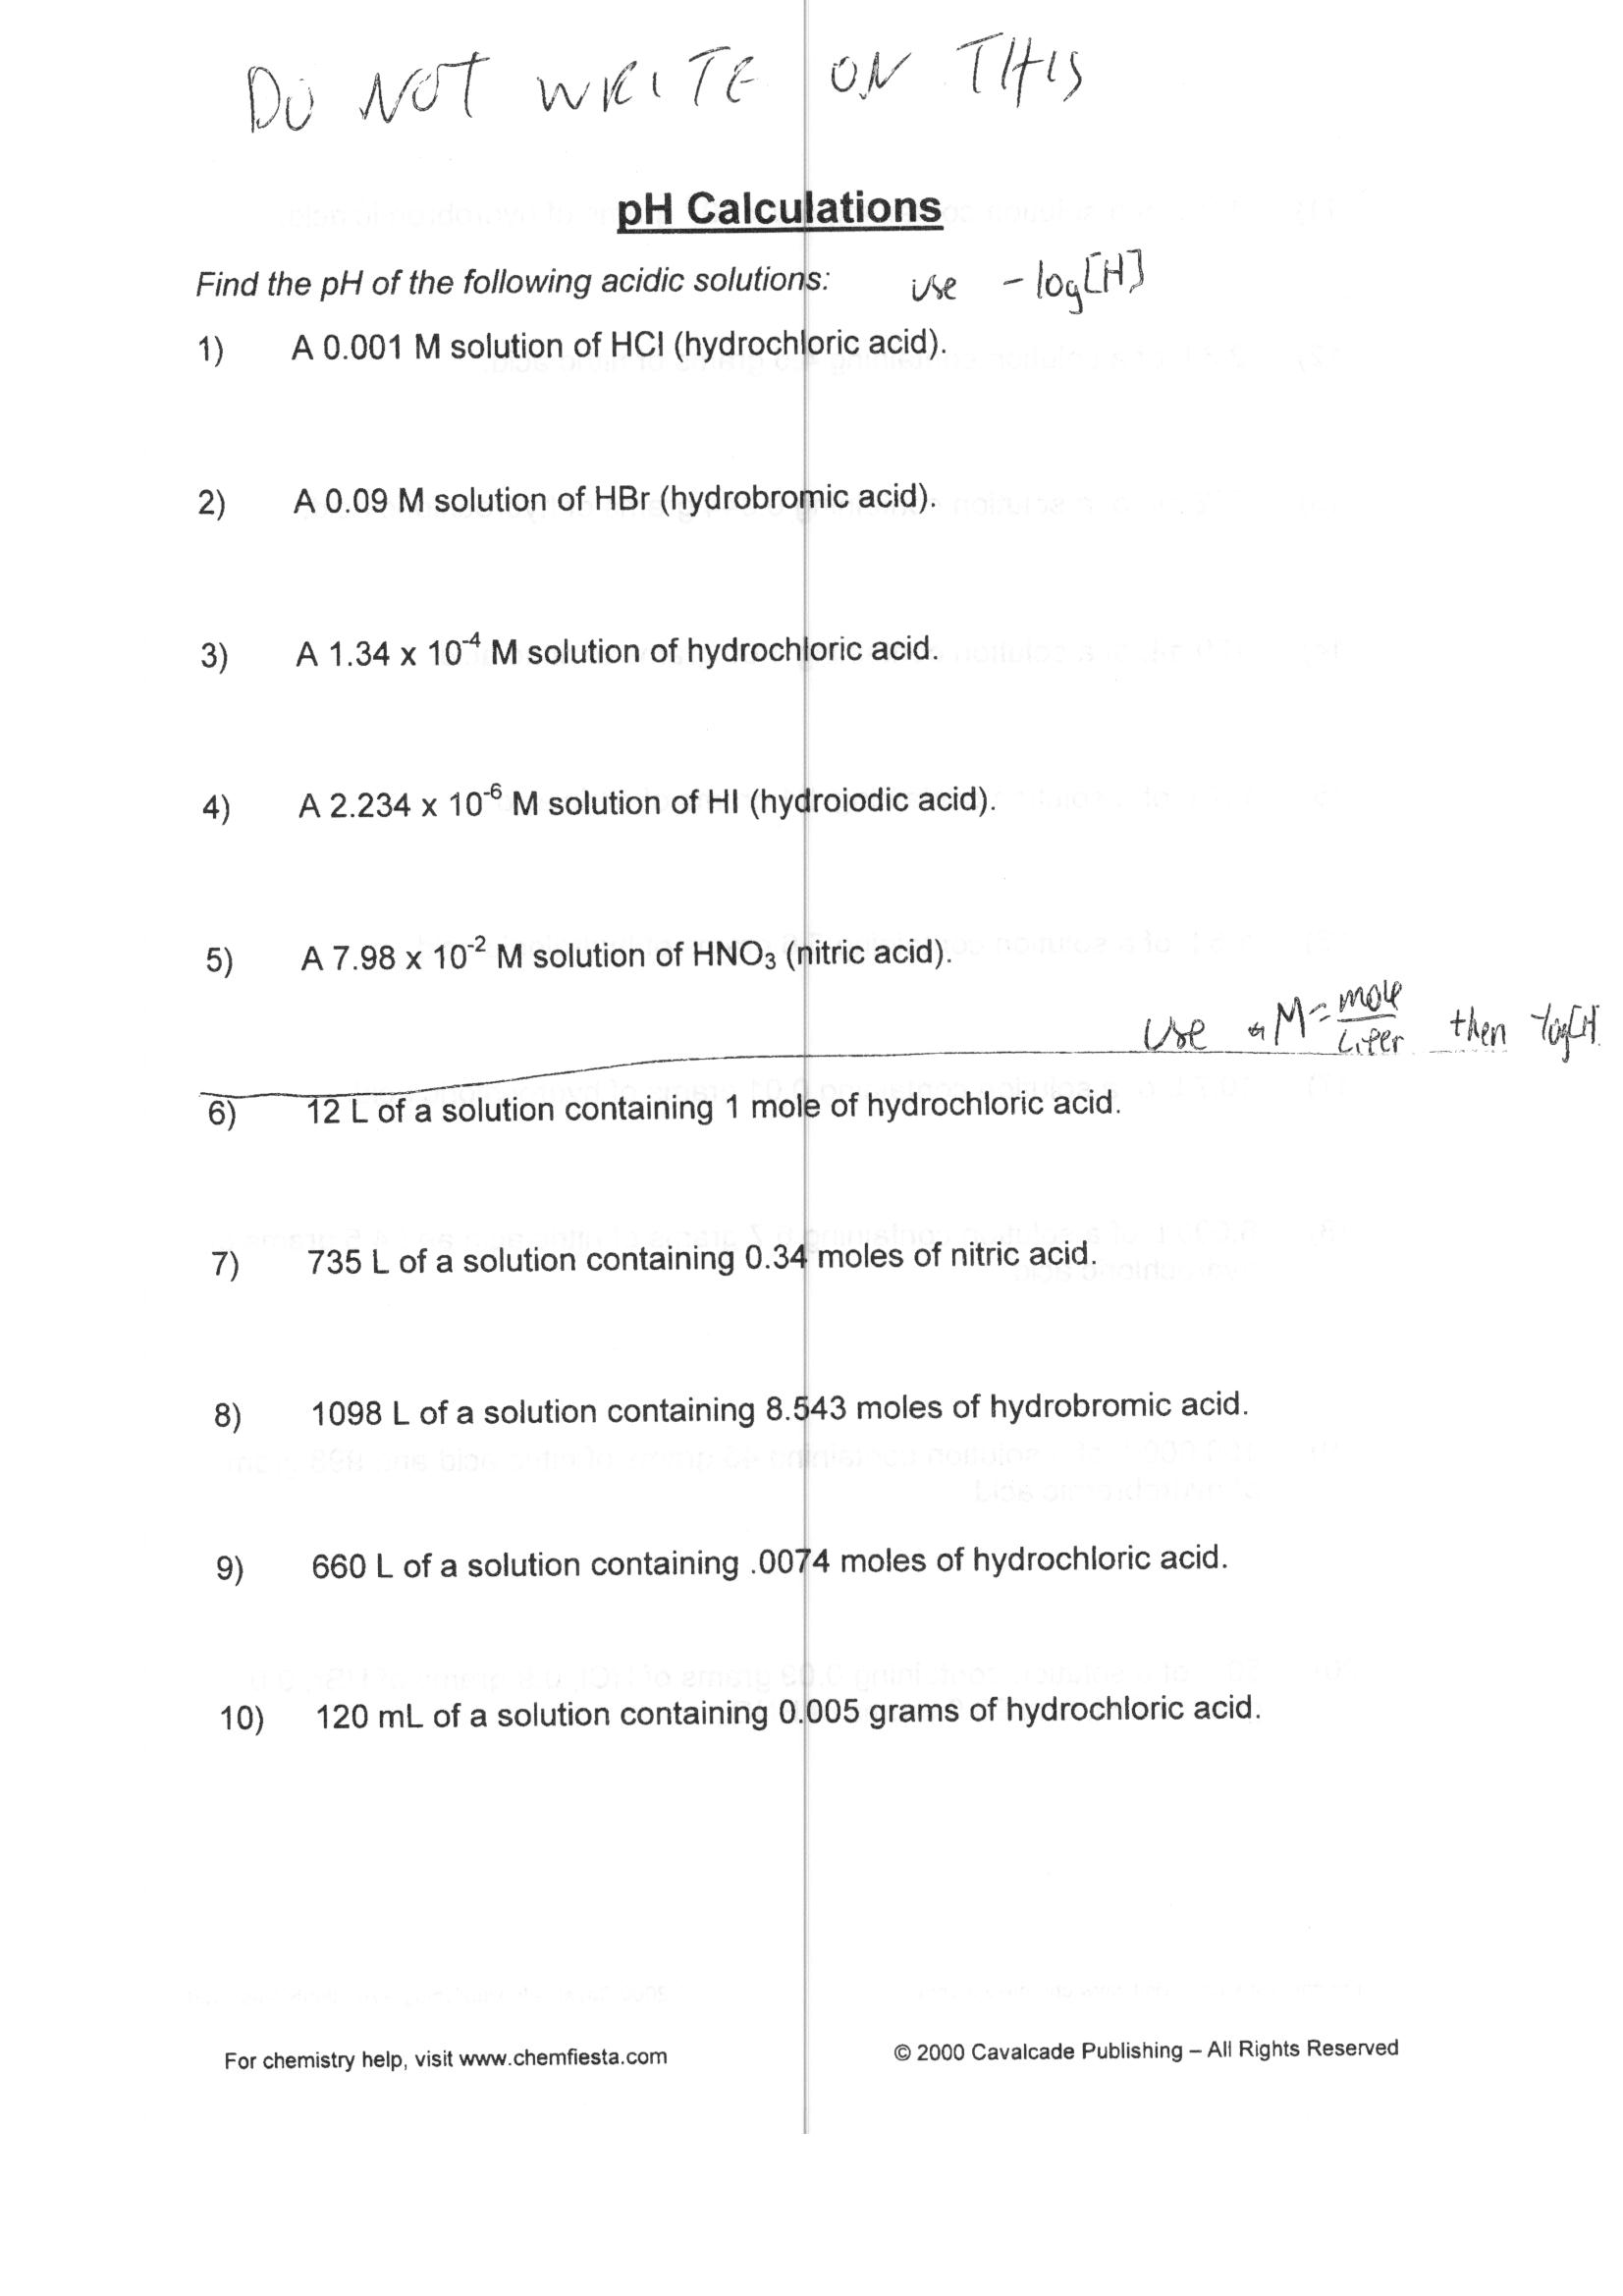 Worksheets Calculating Ph Worksheet best of ph calculations worksheet goodsnyc com calculating and poh worksheet